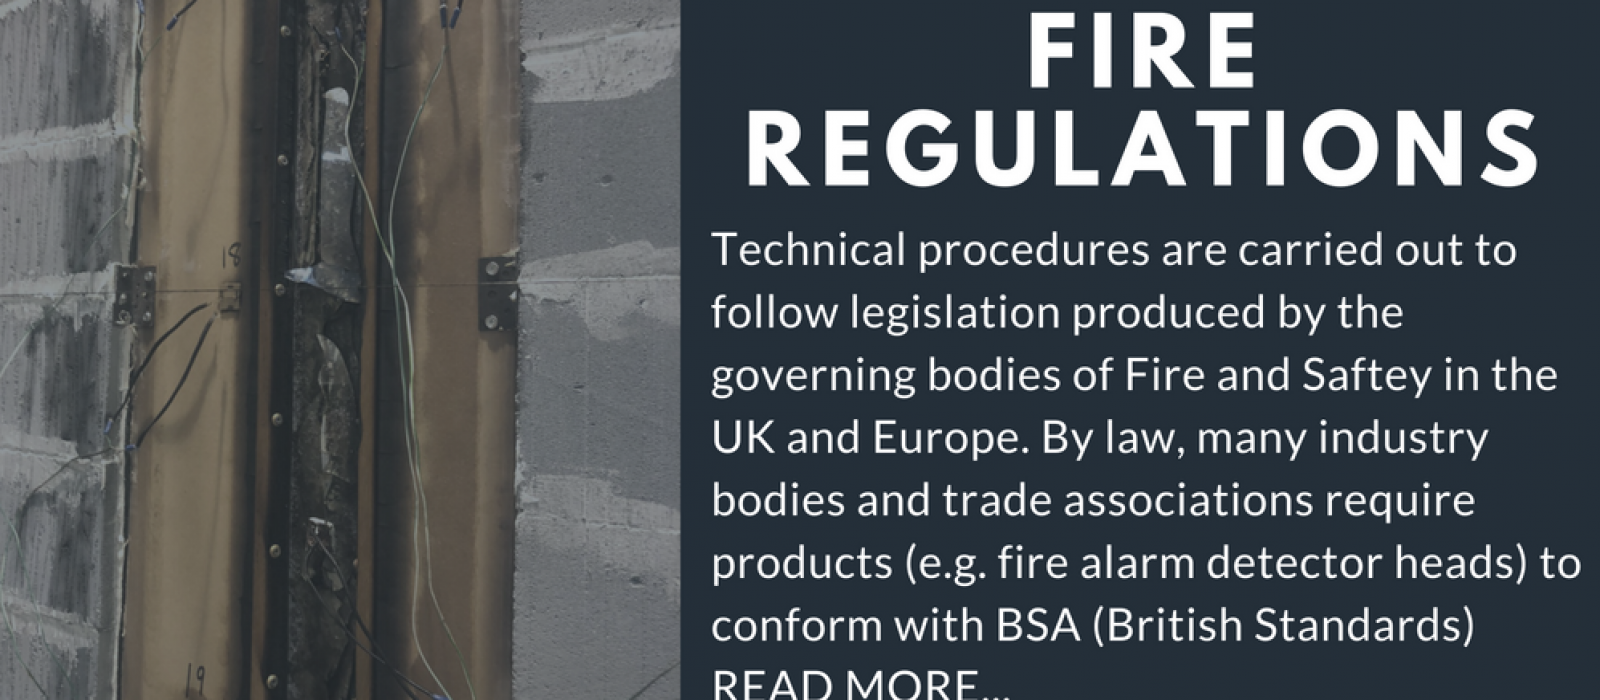 Importance of Fire Regulations